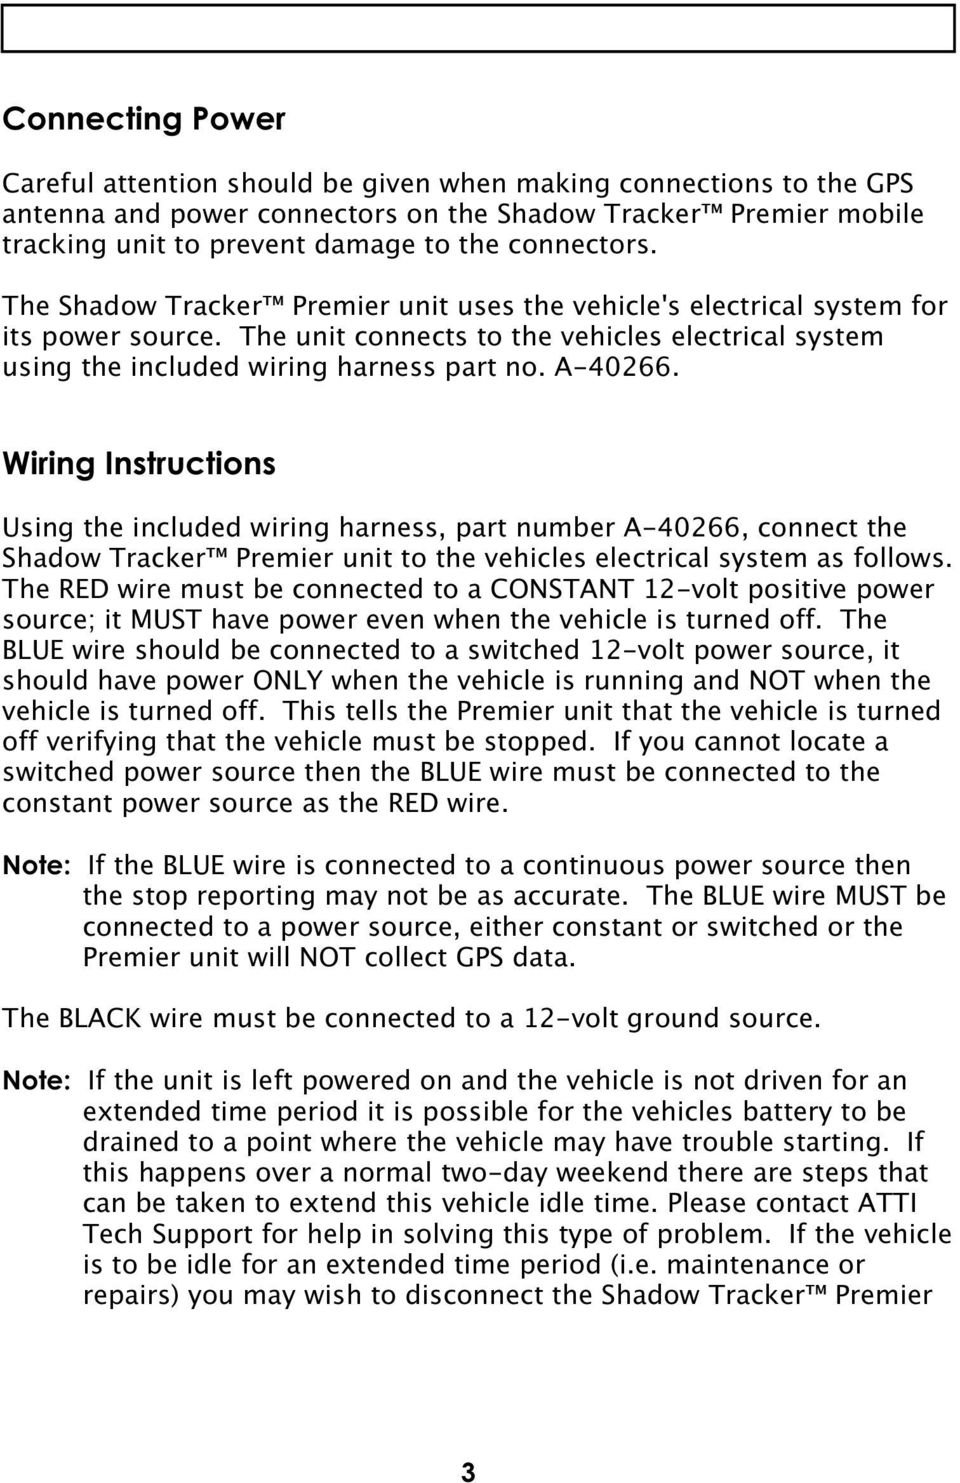 A-40266. Wiring Instructions Using the included wiring harness, part number A-40266, connect the Shadow Tracker Premier unit to the vehicles electrical system as follows.